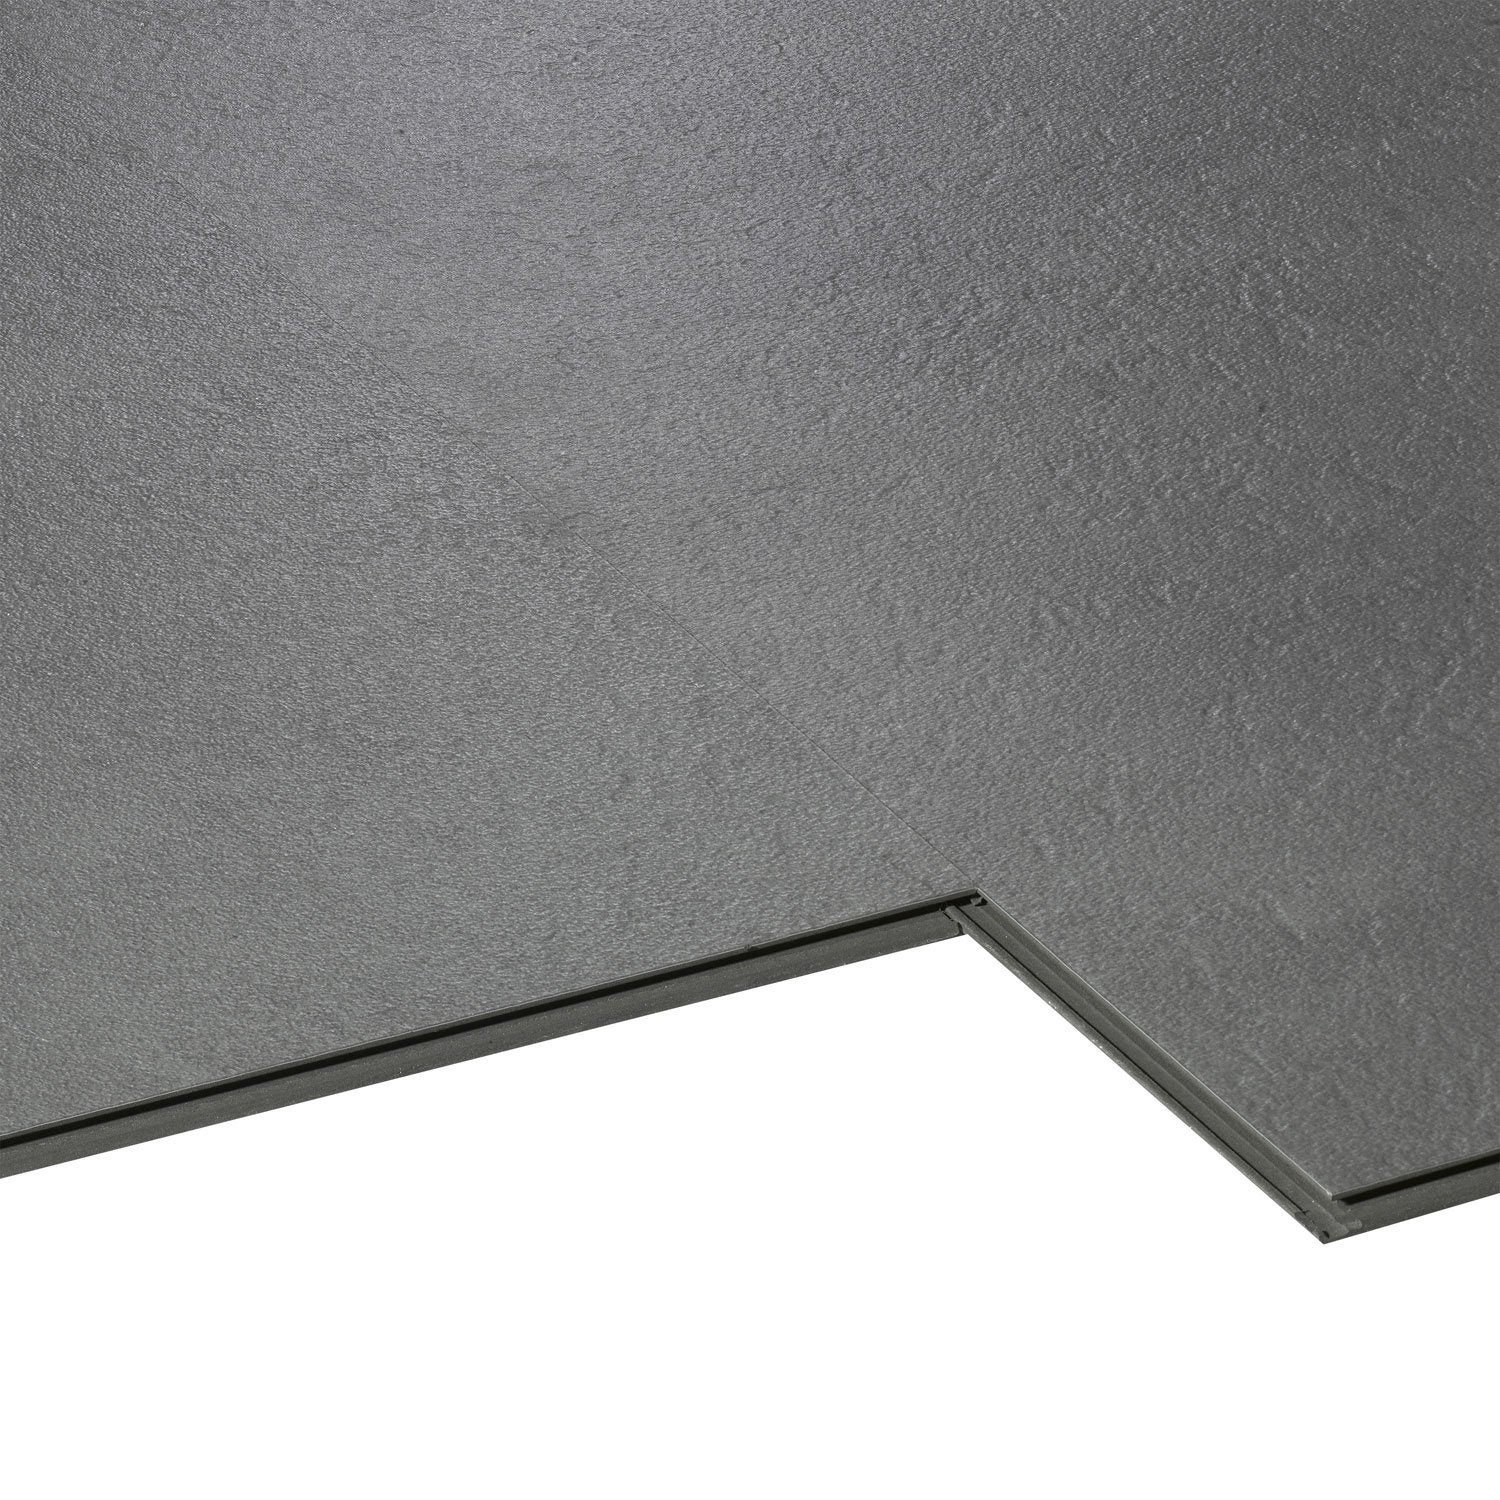 Dalle pvc clipsable gris deep grey aero city aero leroy merlin for Dalle de jardin en pvc